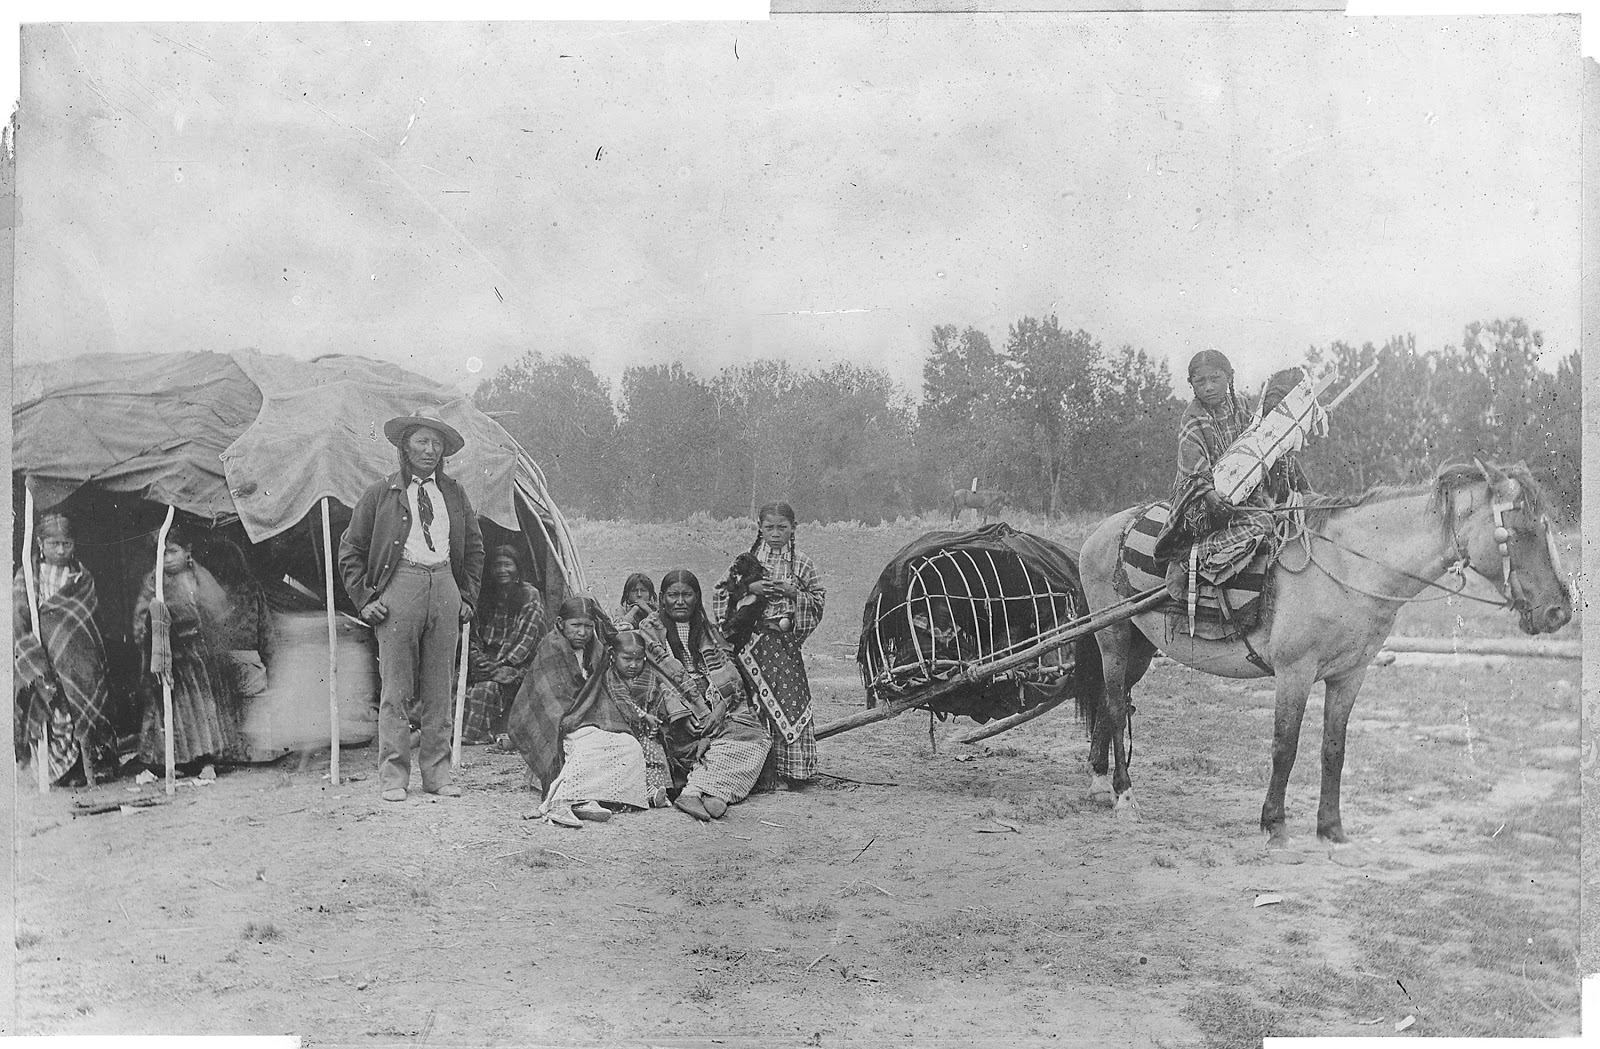 """""""Cheyenne: Stump Horn and family showing Horse Travois."""" Author unknown (U.S. National Archives and Records Administration) [Public domain], via Wikimedia Commons"""